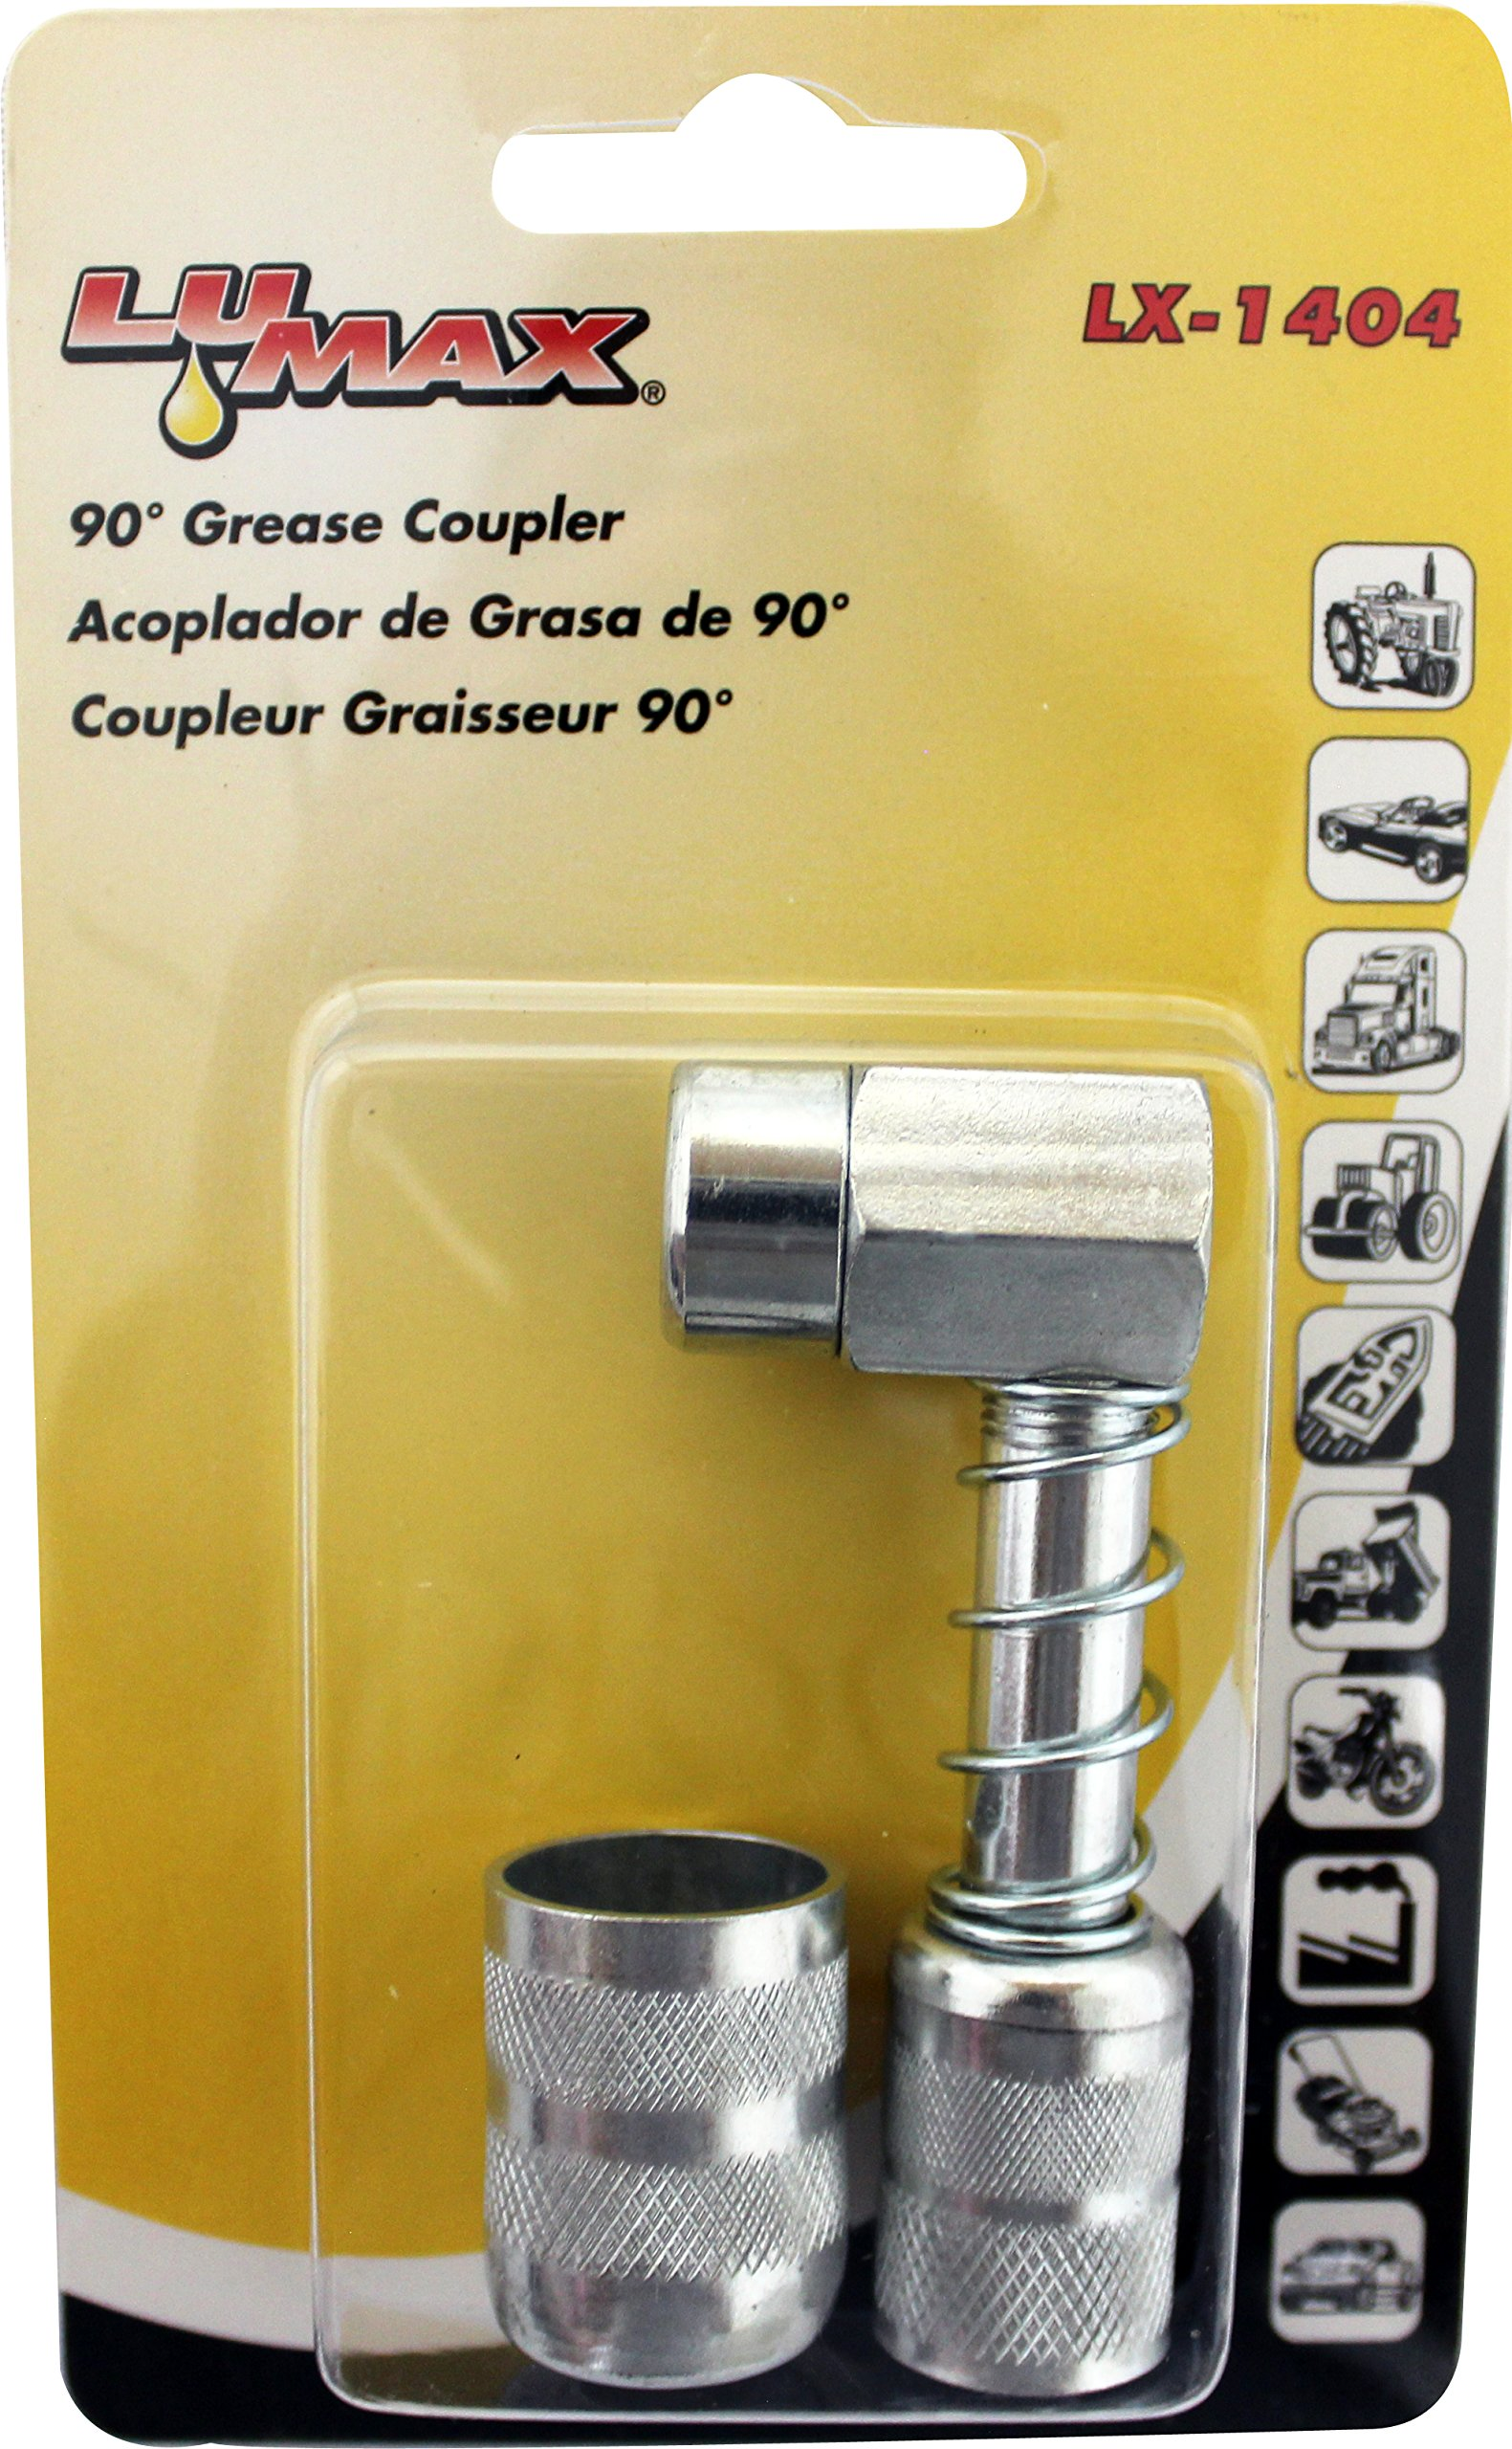 Lumax LX-1404 Silver 90 Degree Grease Coupler by Lumax (Image #2)